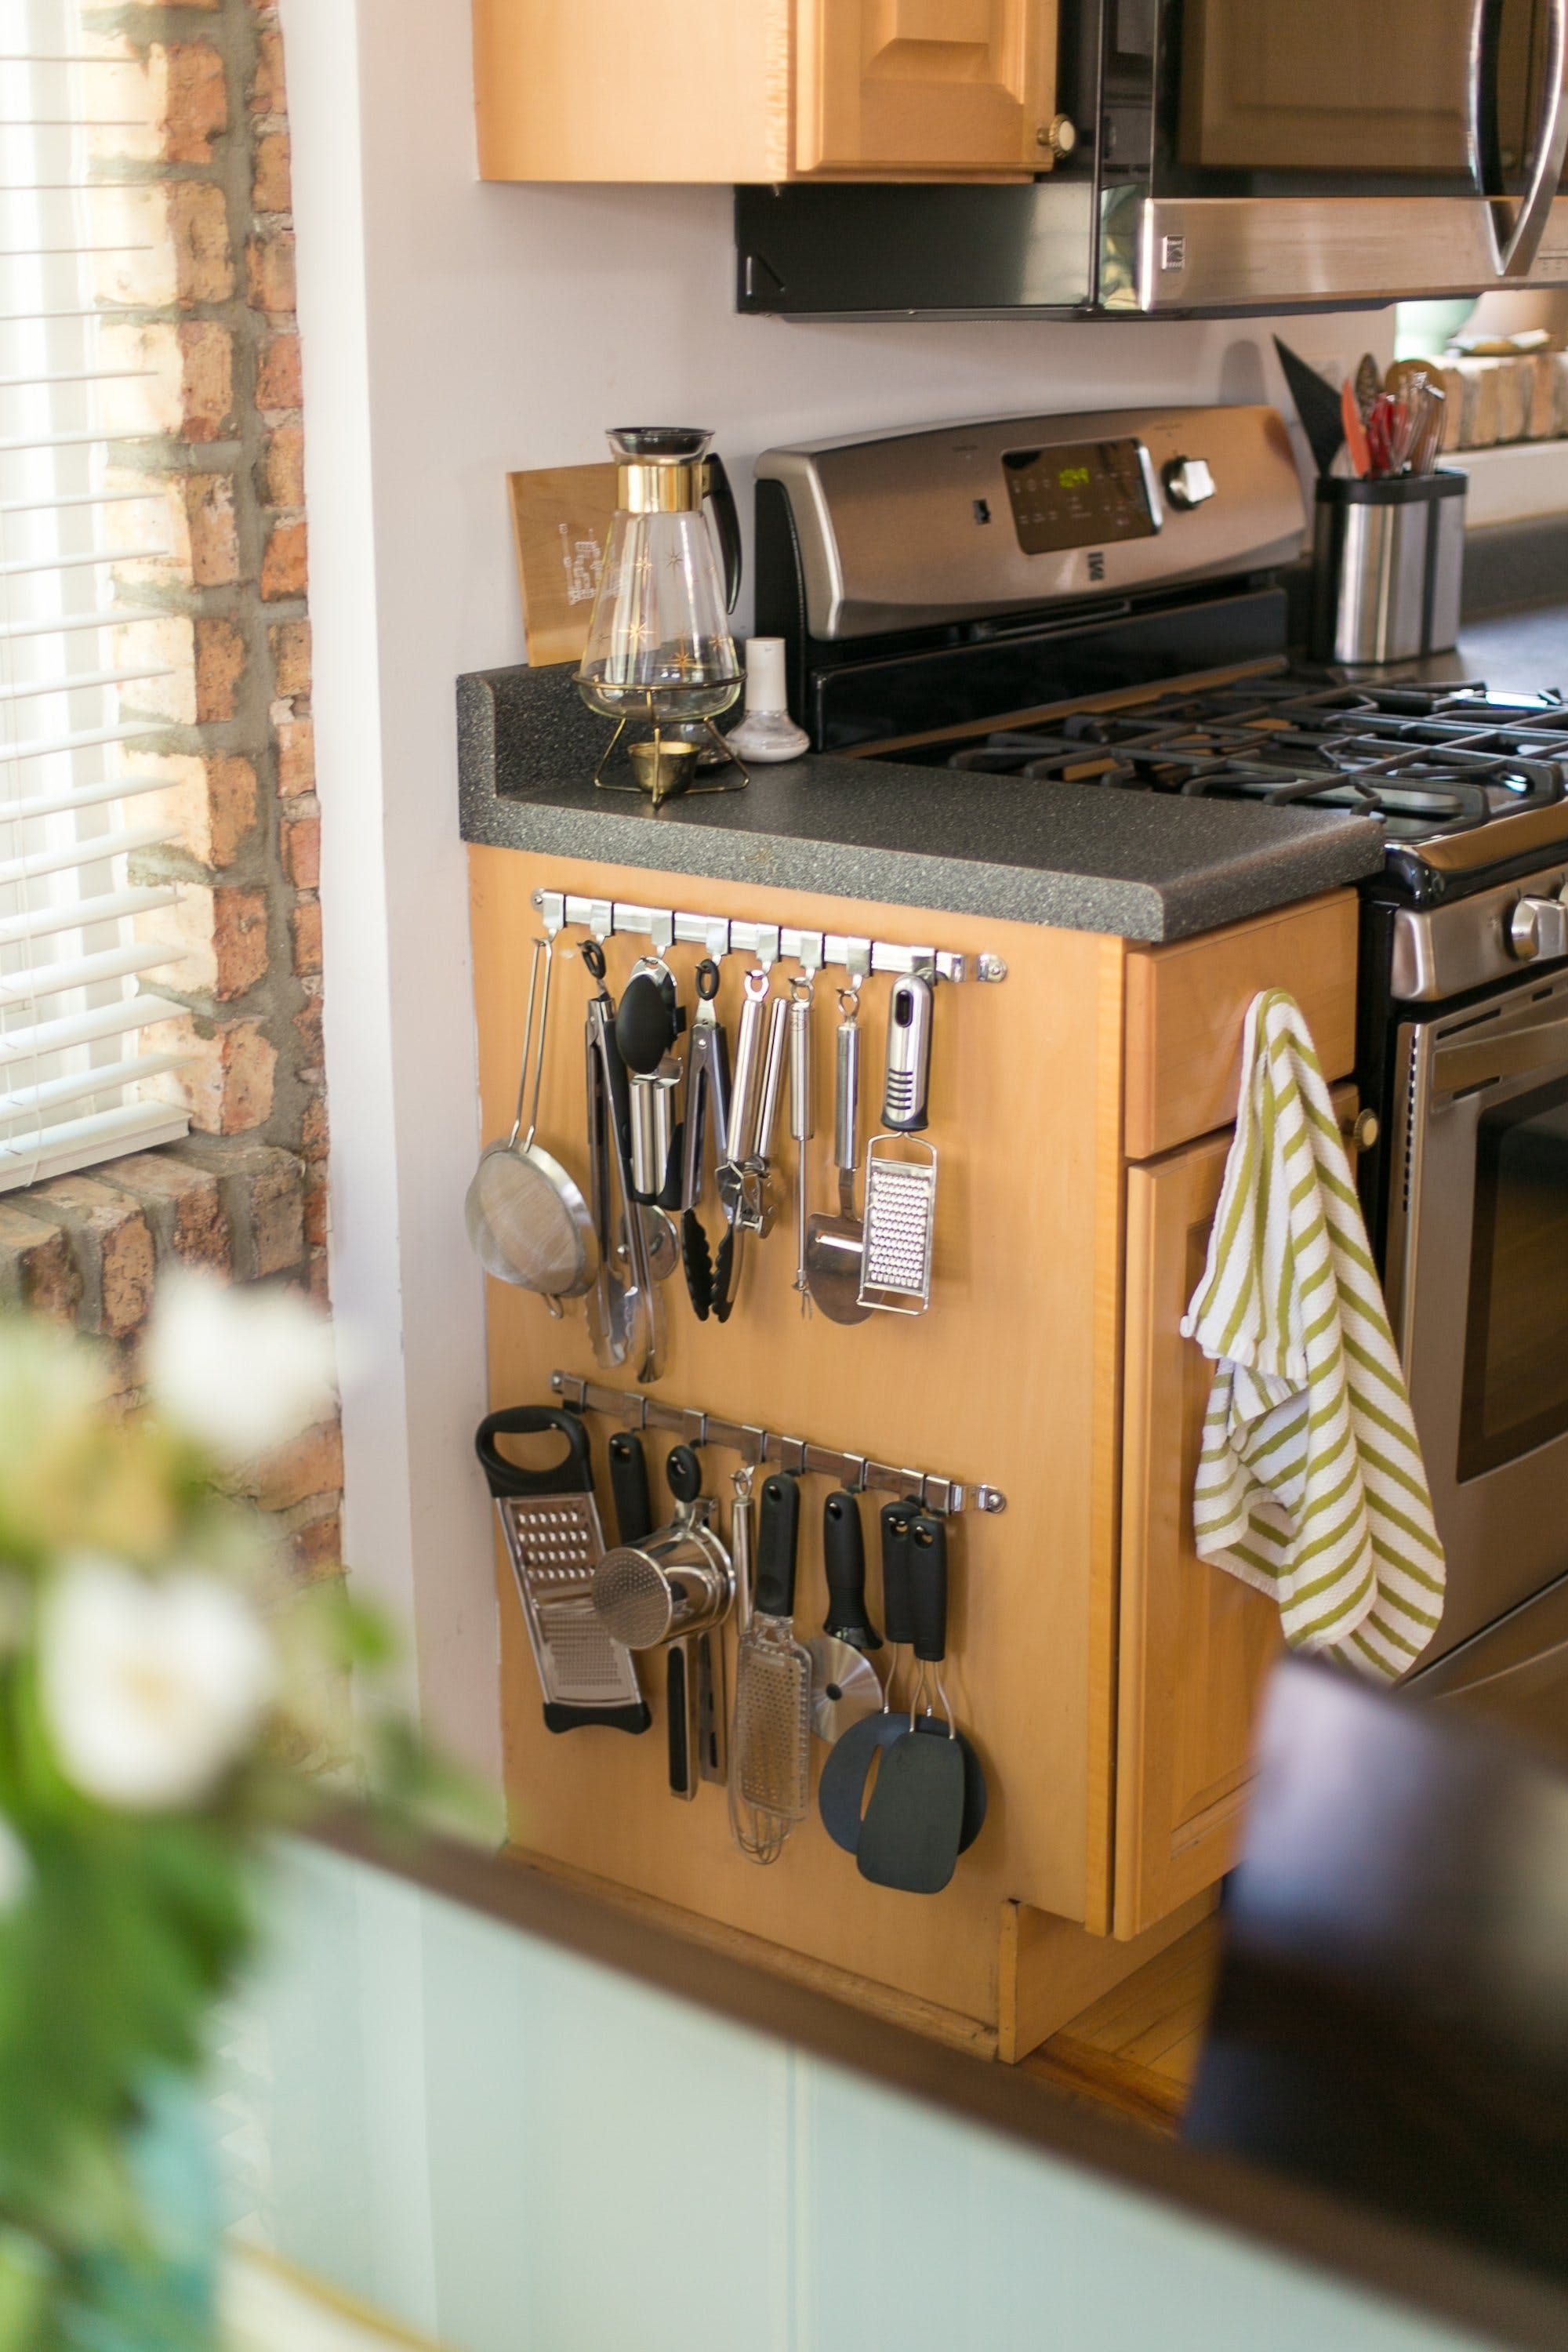 Perfect No Counter Space? Solutions For A Clean And Clutter Free Kitchen Sink Zone  Apartment Therapy